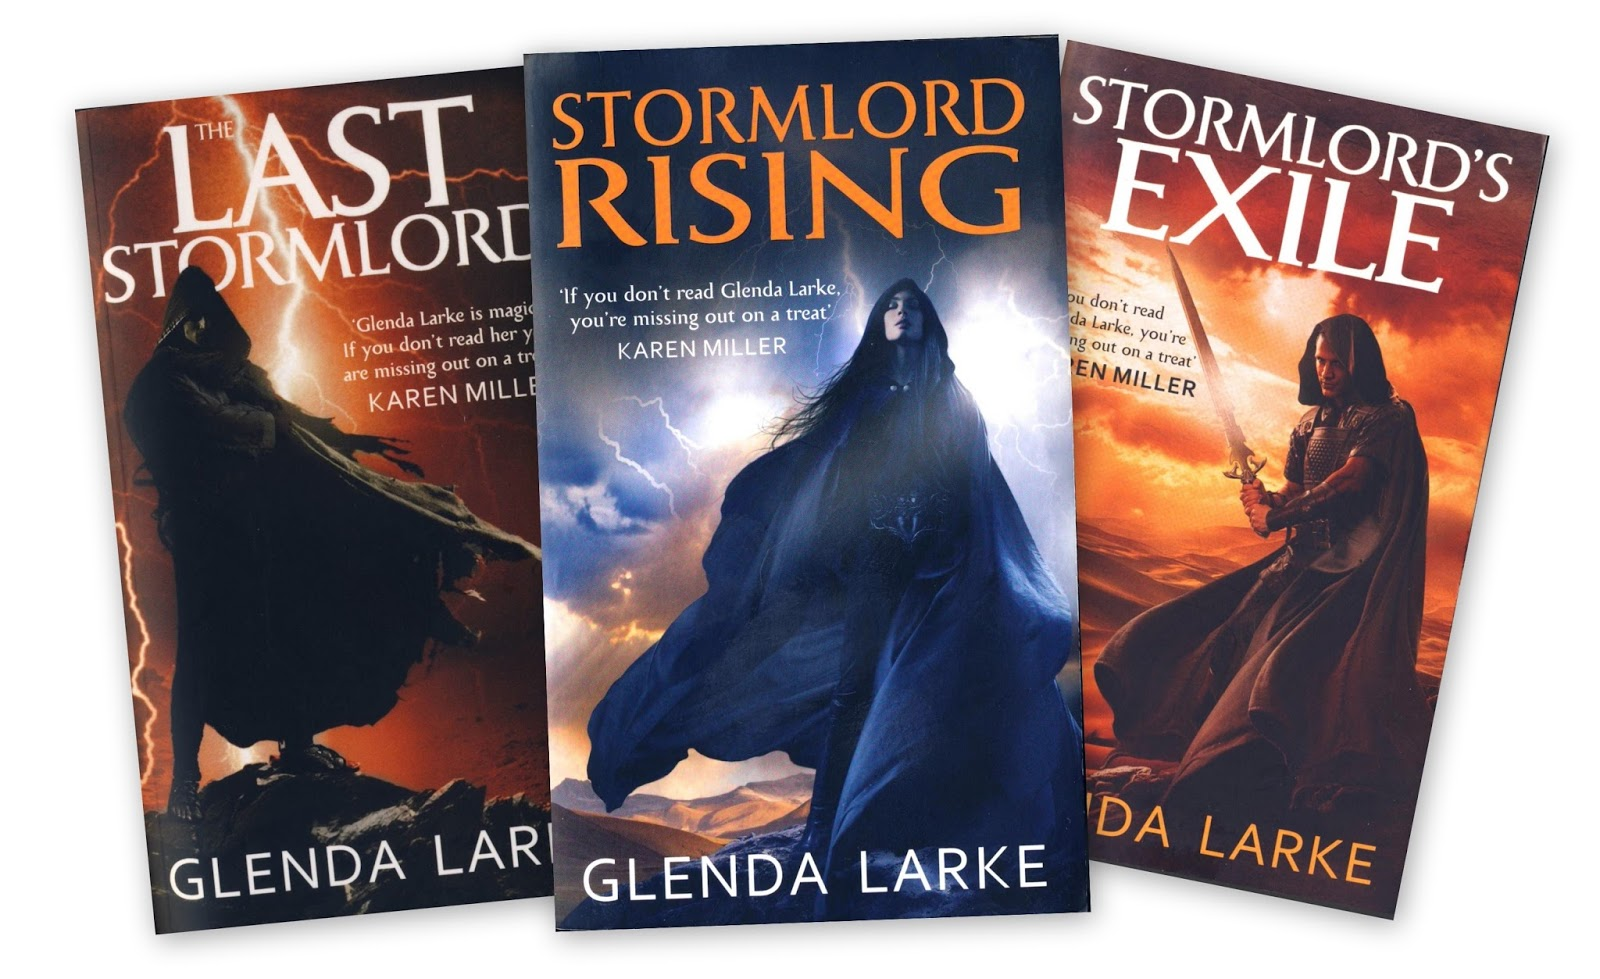 And Yes, Like Every Book Of The The Stormlord Trilogy Which Ultimately Won  The Sara Douglass Series Award, All Three Of The Forsaken Lands Trilogy  Have Been